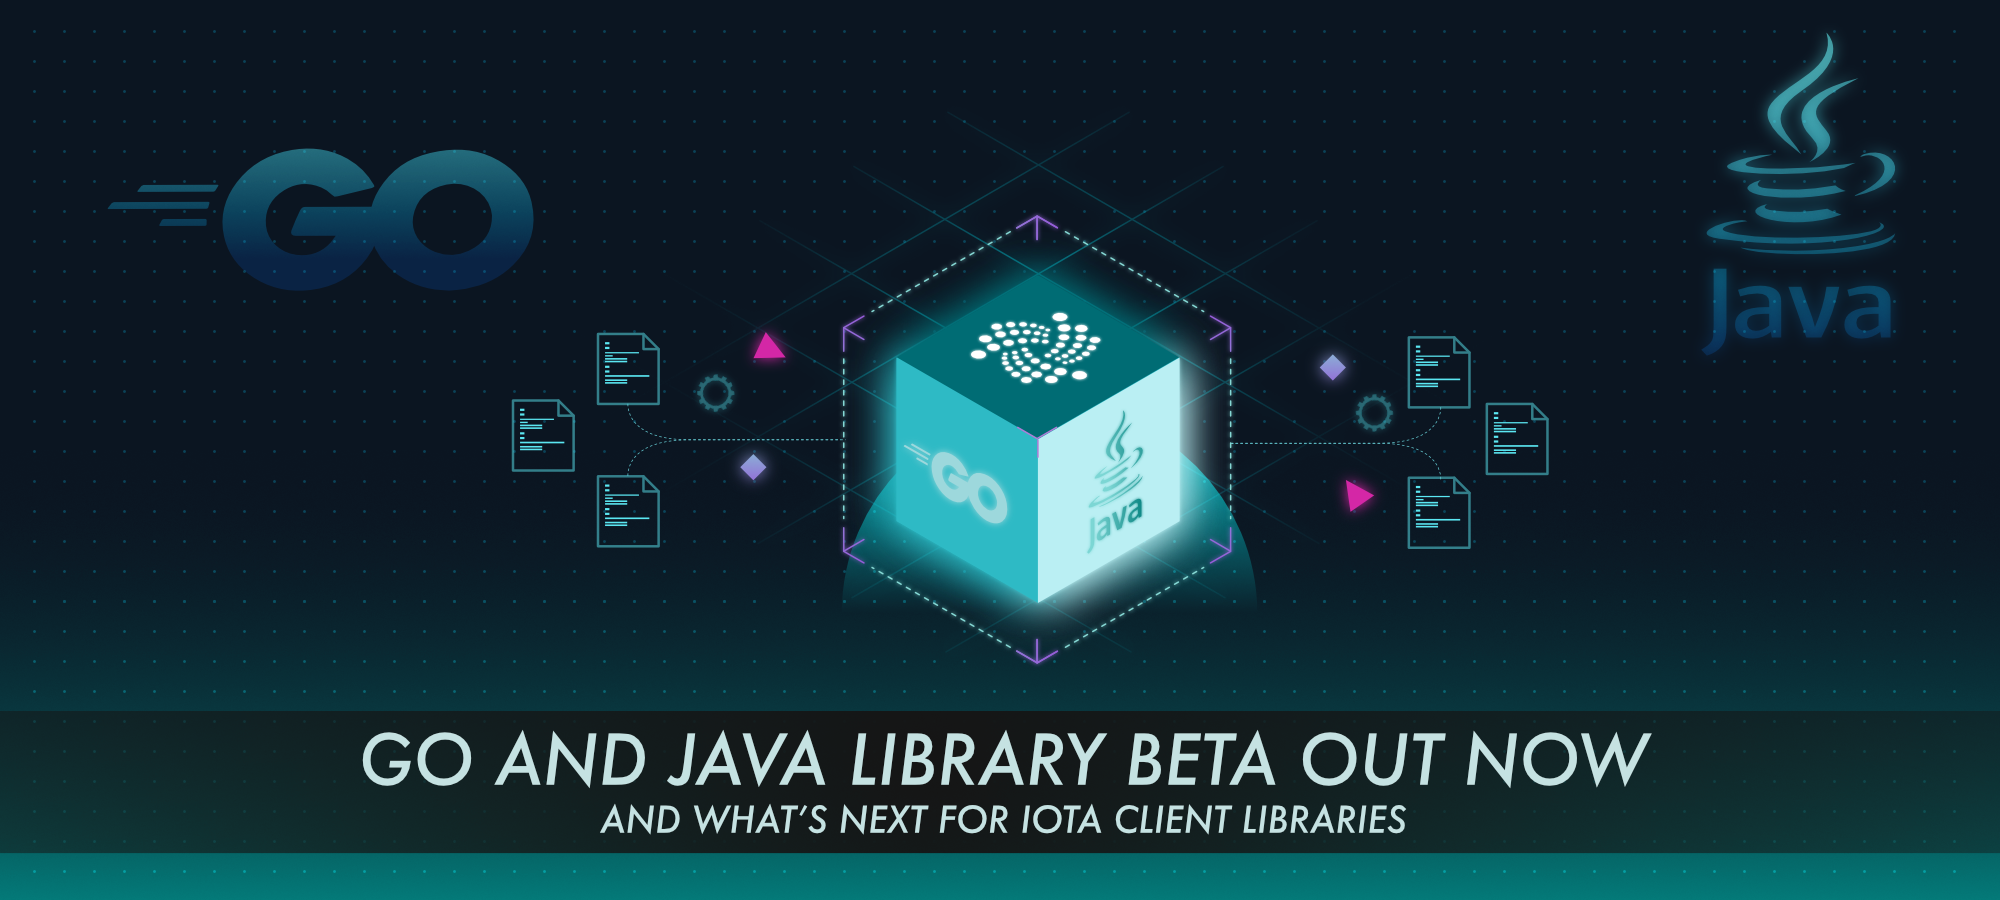 Go and Java library beta out now and what's next for IOTA